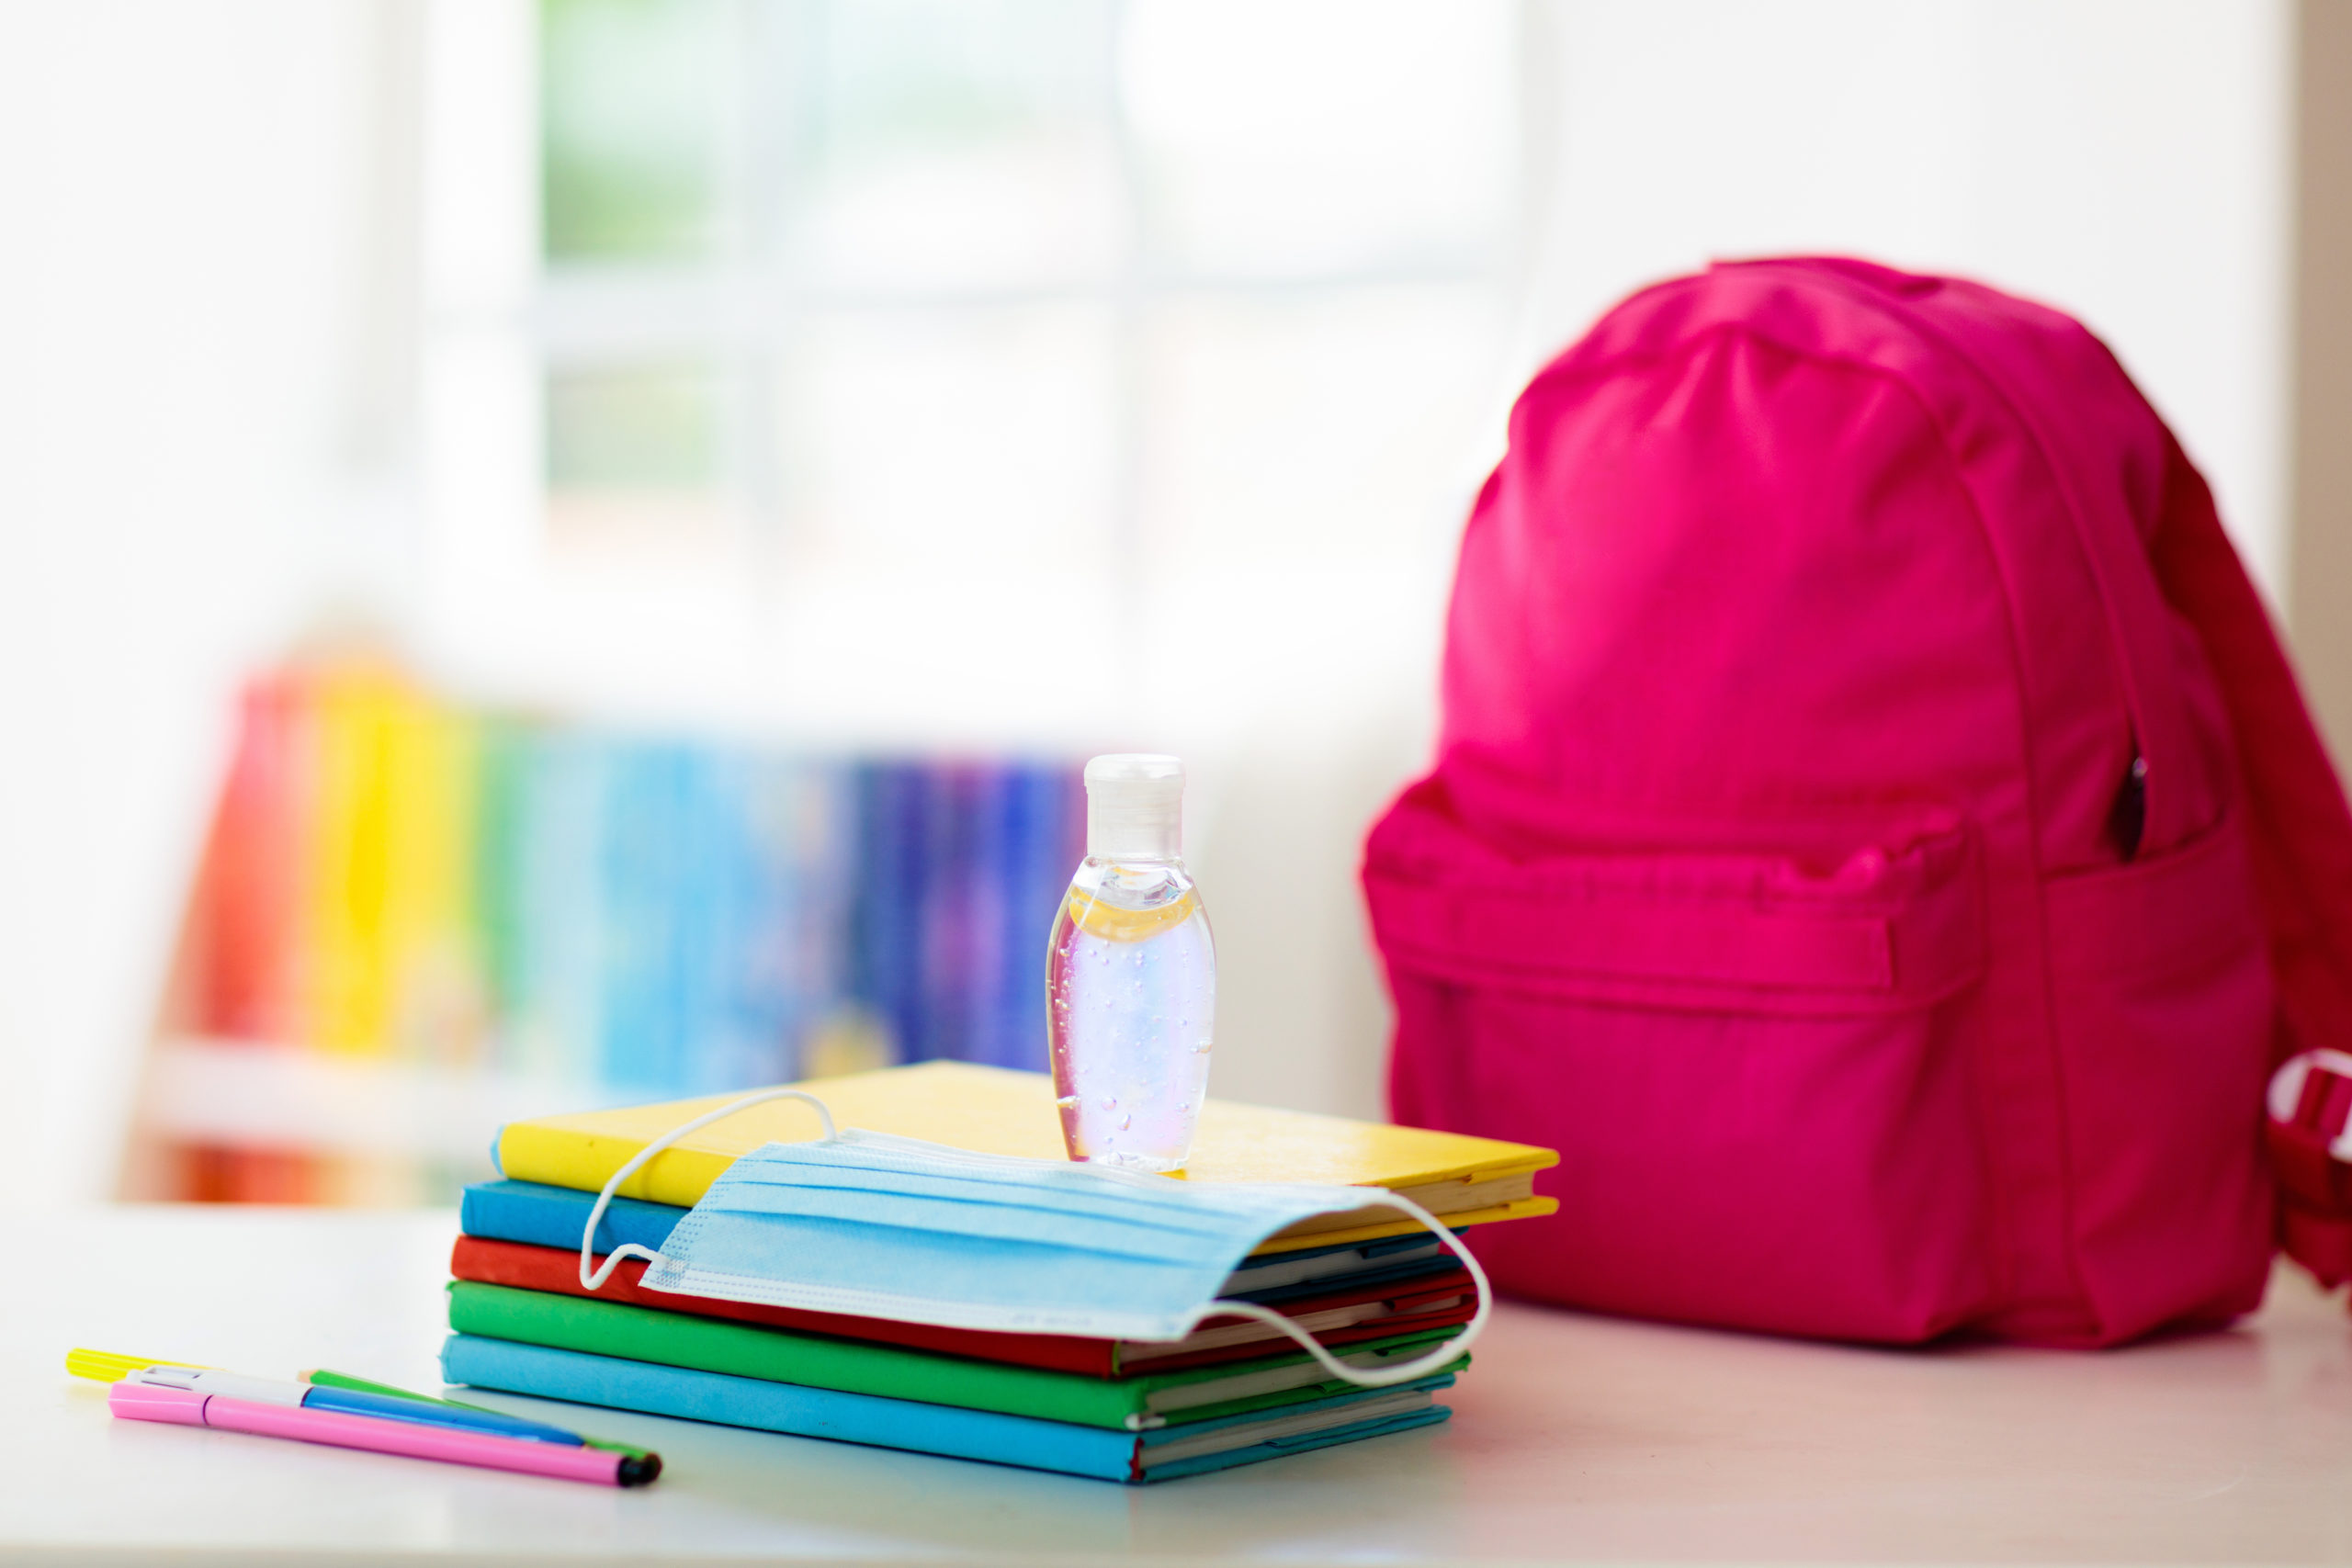 Backpack of school child with face mask and sanitizer. Student safety after coronavirus pandemic. Virus and disease prevention for kids. Back to school and kindergarten after covid-19 outbreak.